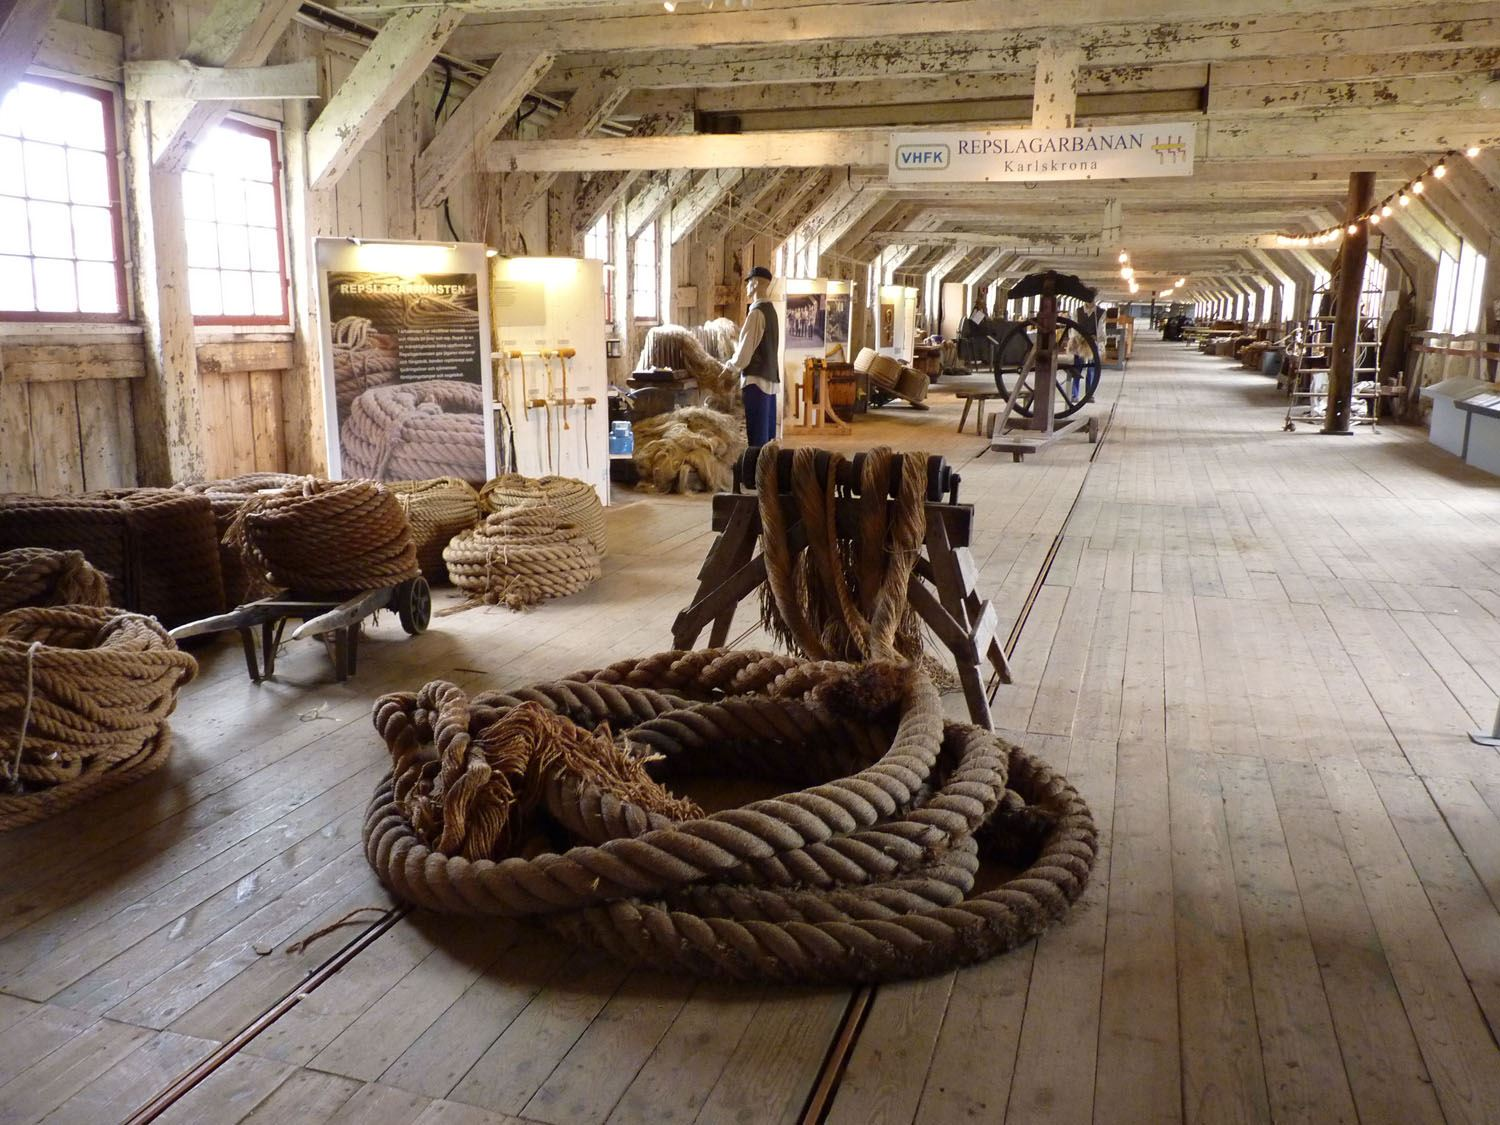 Guided tours - The old Navy Shipyard with ropemaking